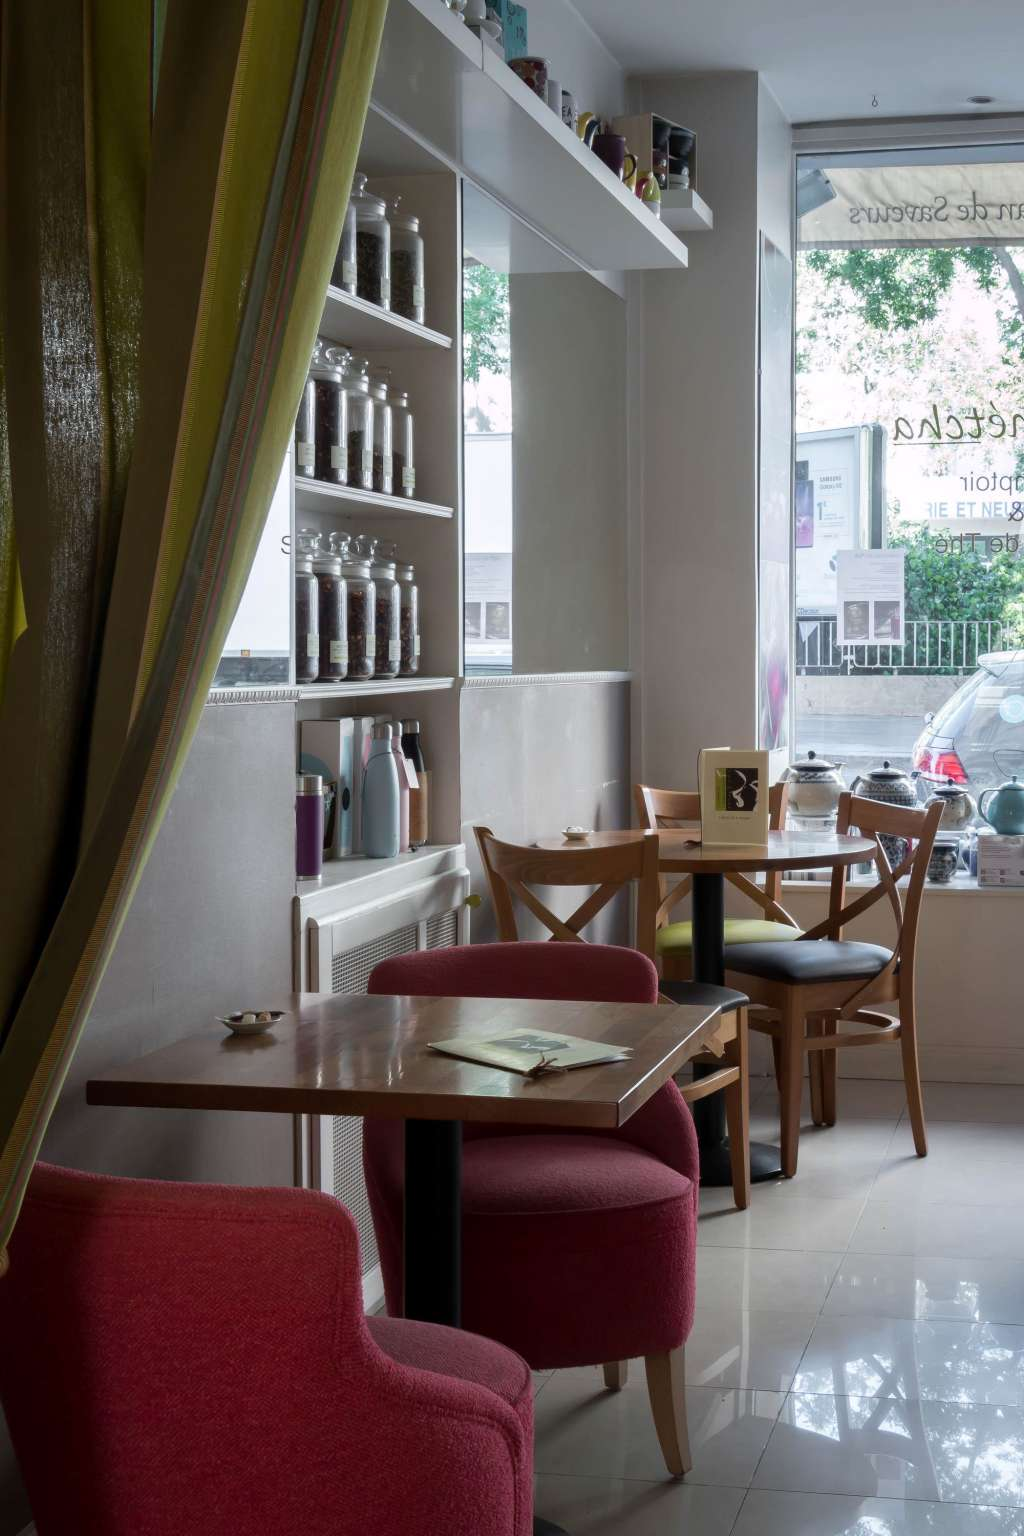 guide des salons de charme, paris